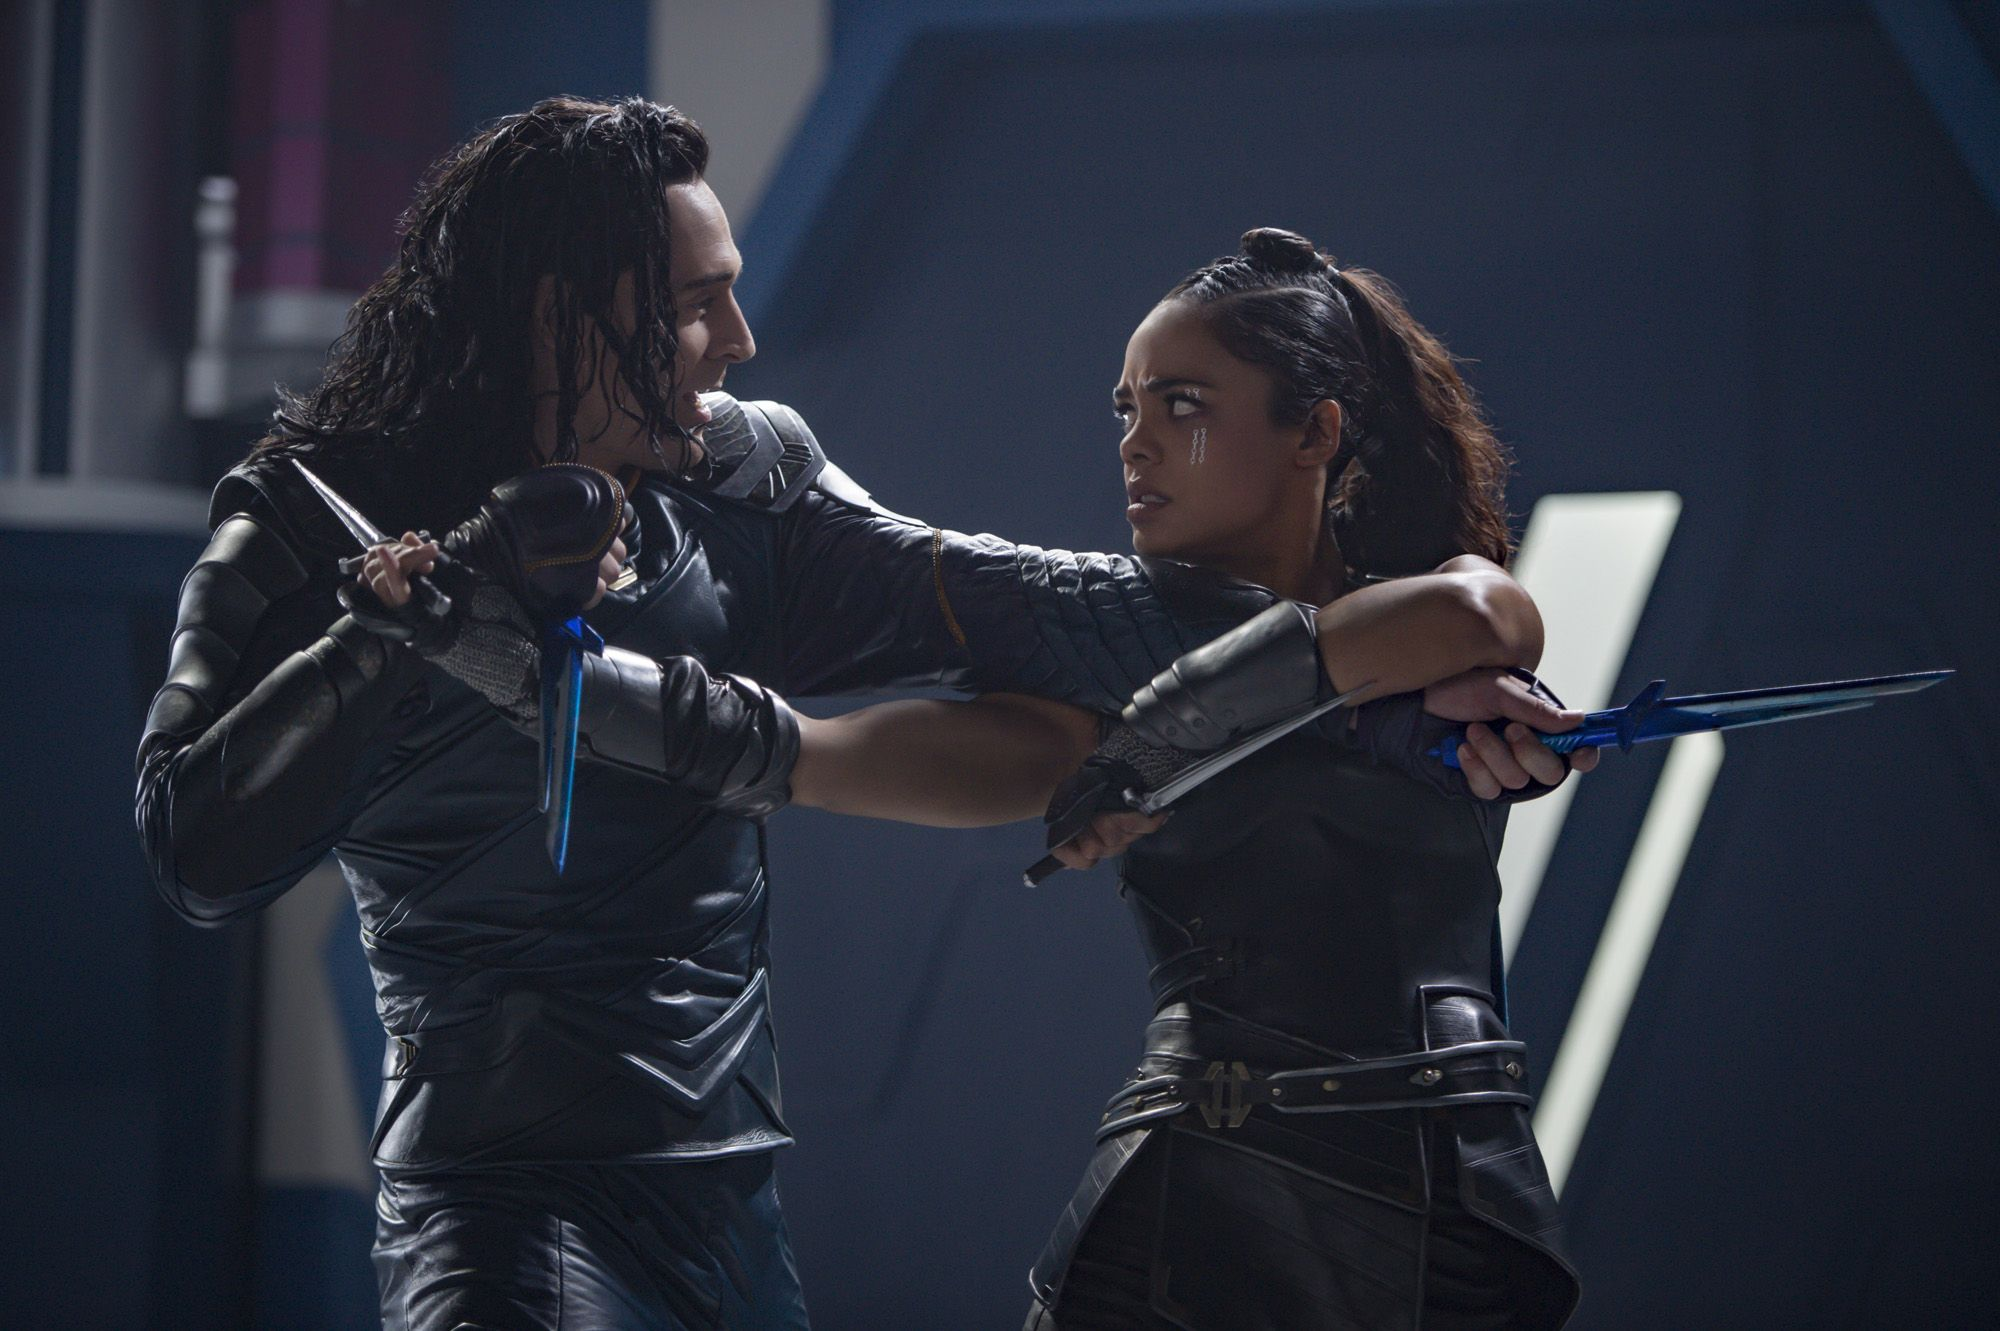 thor-ragnarok-tom-hiddleston-tessa-thompson-1510694724-1510694725.jpg